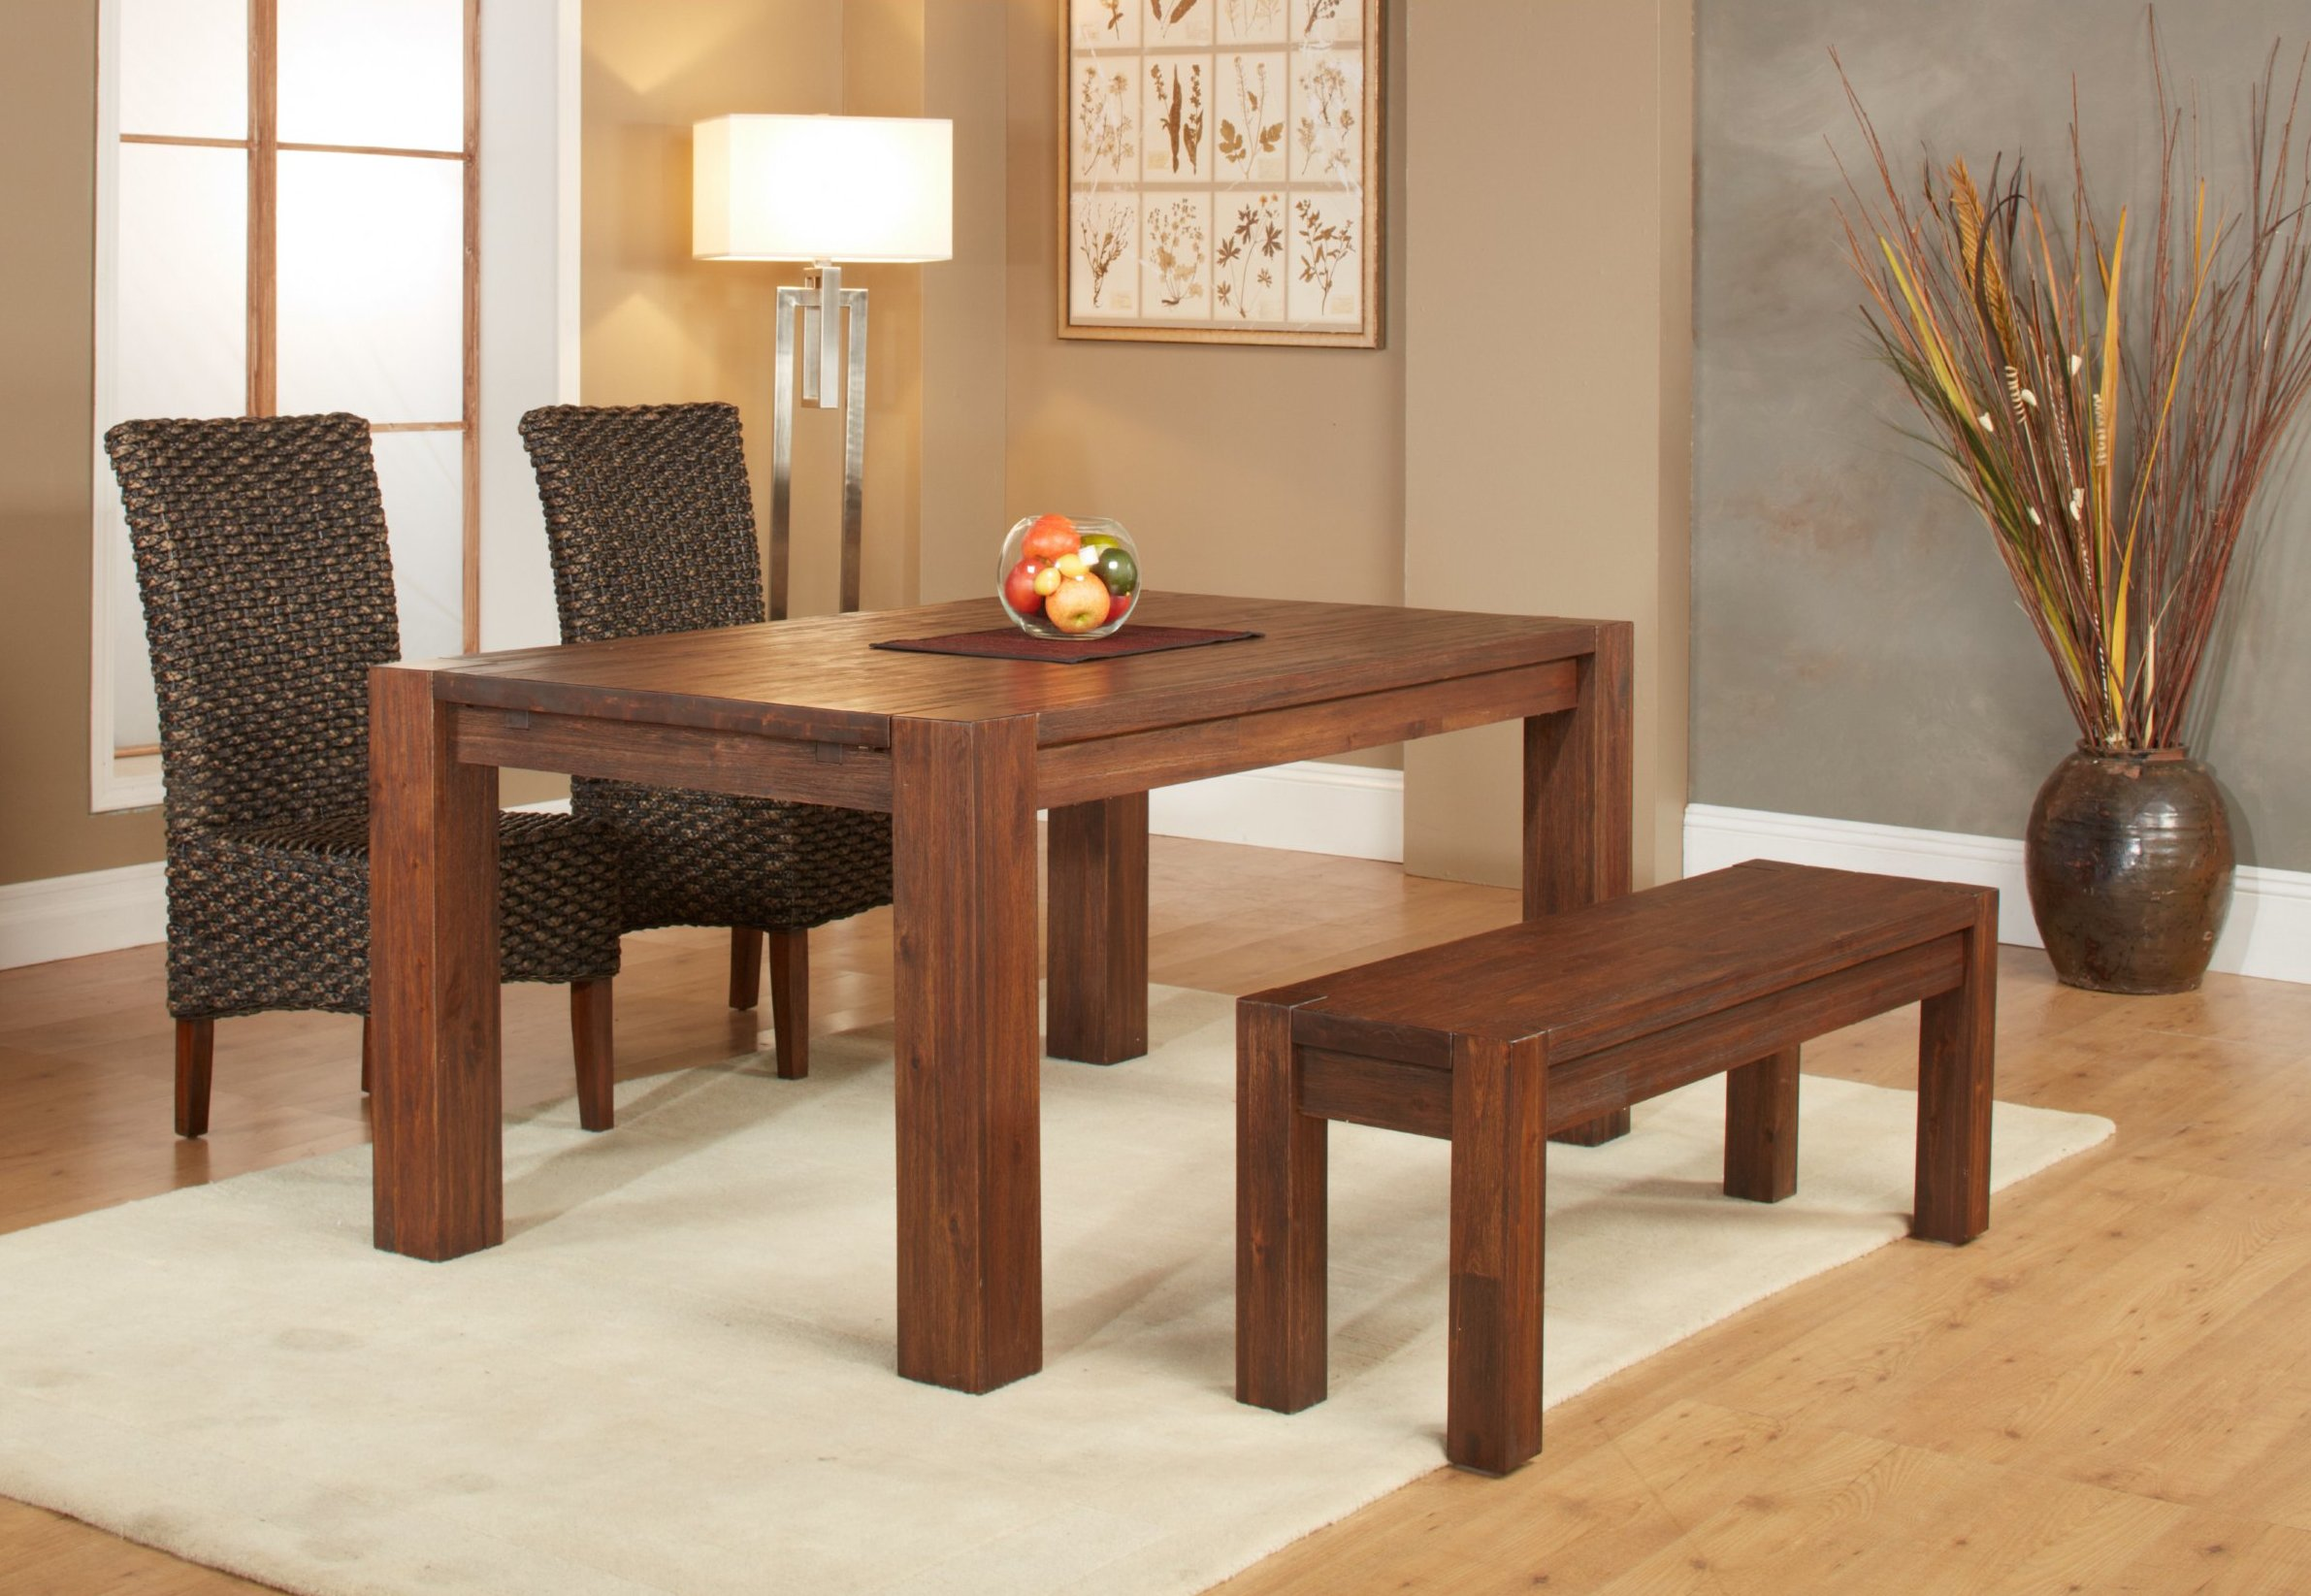 Breakfast Room Tables 38 Types Of Dining Room Tables Extensive Buying Guide